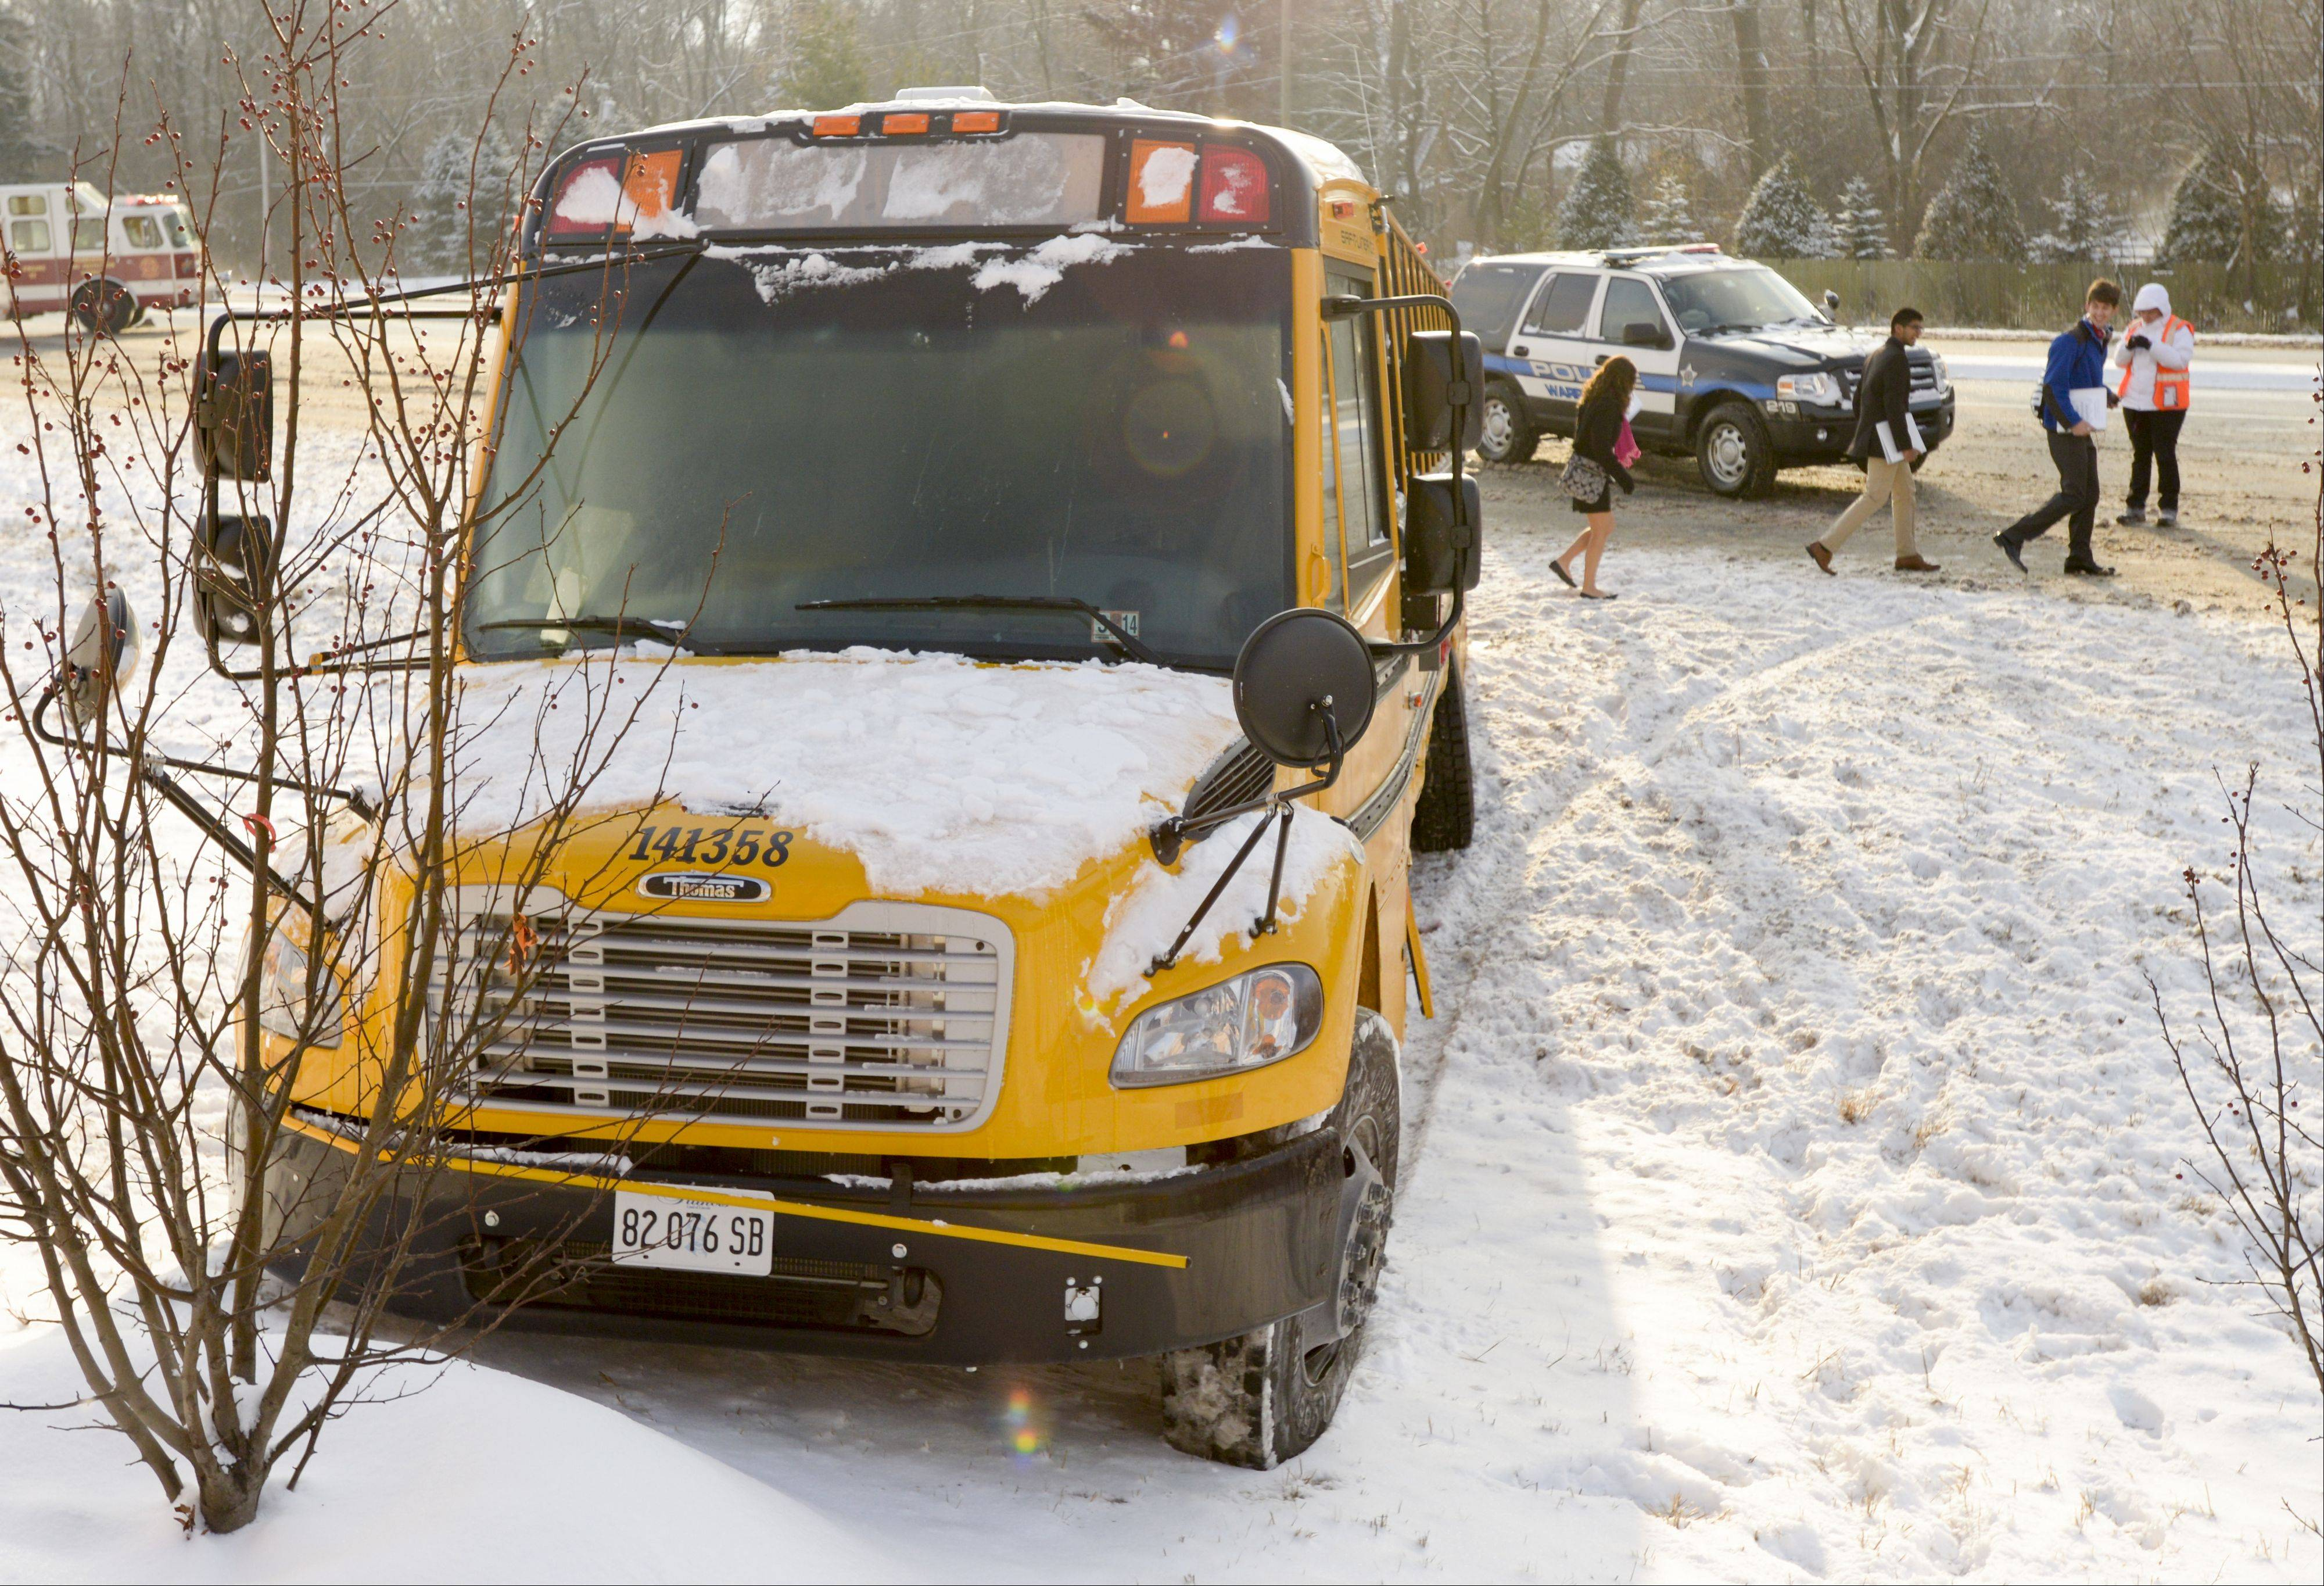 Students exit a school bus Monday morning after it came to rest in a ditch along Butterfield Road near Route 59 in Warrenville. The bus, carrying students from Metea Valley and Waubonsie Valley high schools, was struck by a Ford Explorer and sent spinning off the road. None of the students were injured, but the driver of the Explorer was transported to Central DuPage Hospital complaining of neck pains.